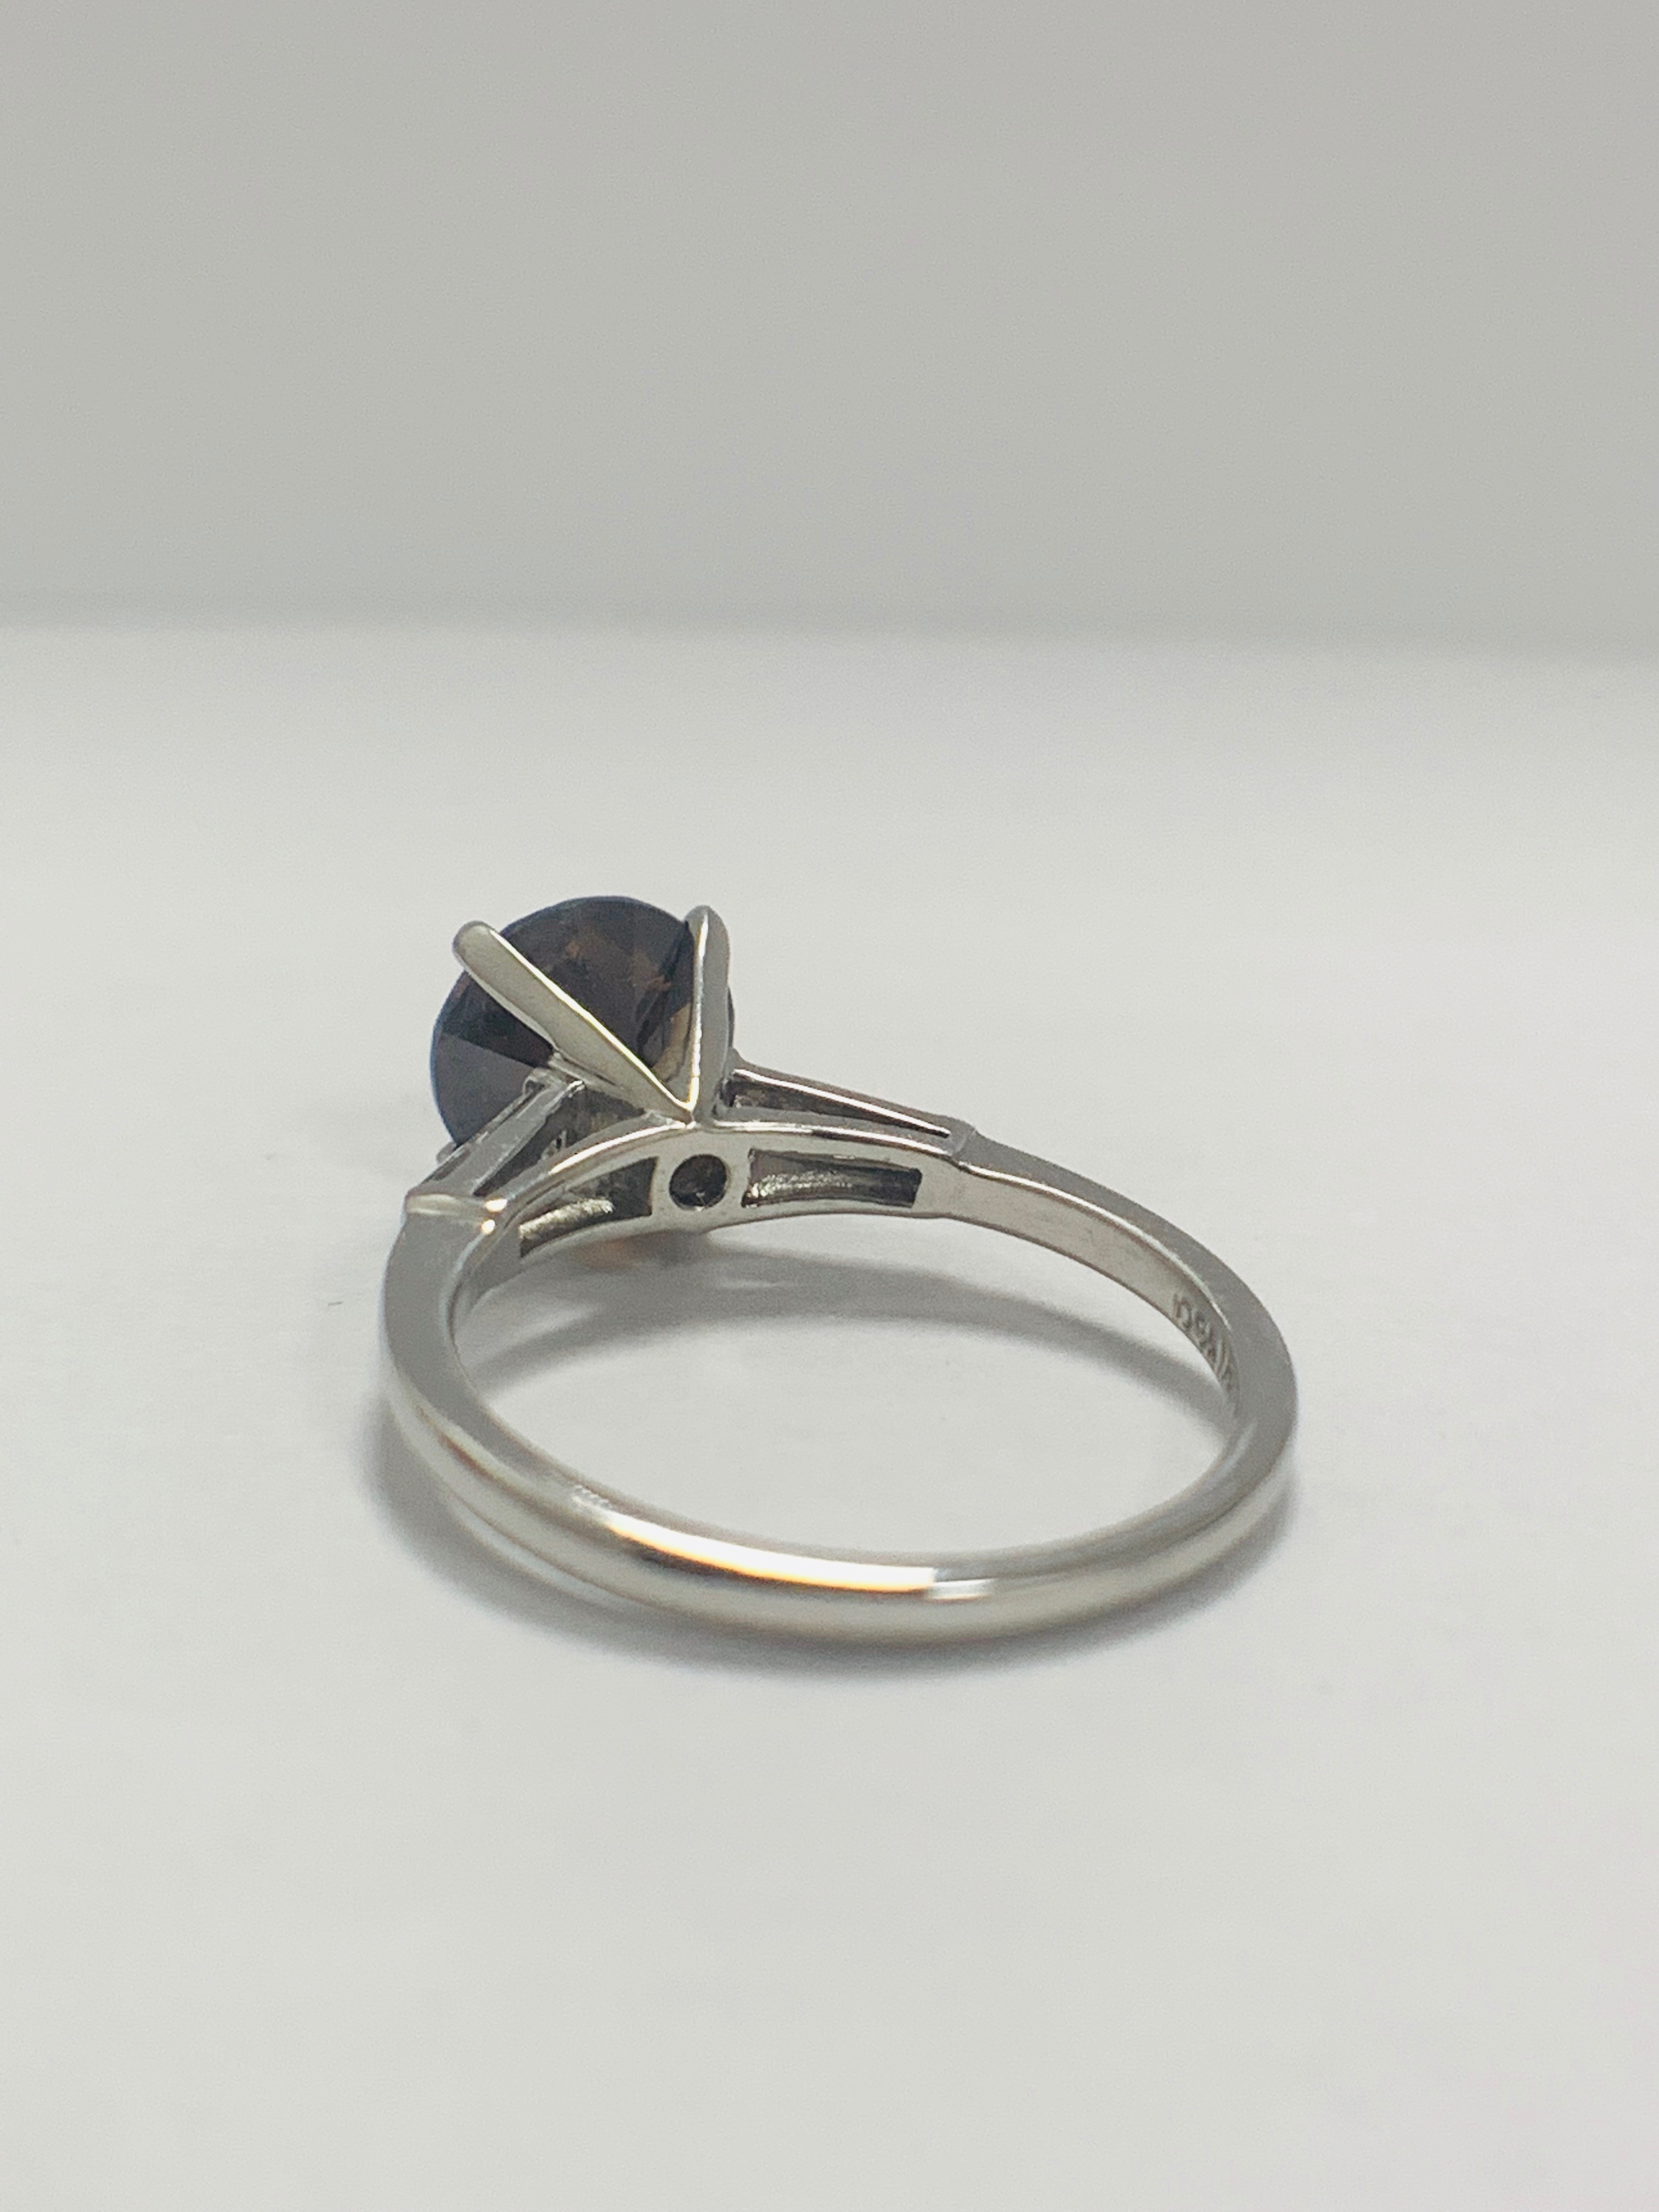 Platinum Diamond ring featuring centre, round brilliant cut, deep orangey brown Diamond (2.15ct) - Image 7 of 14